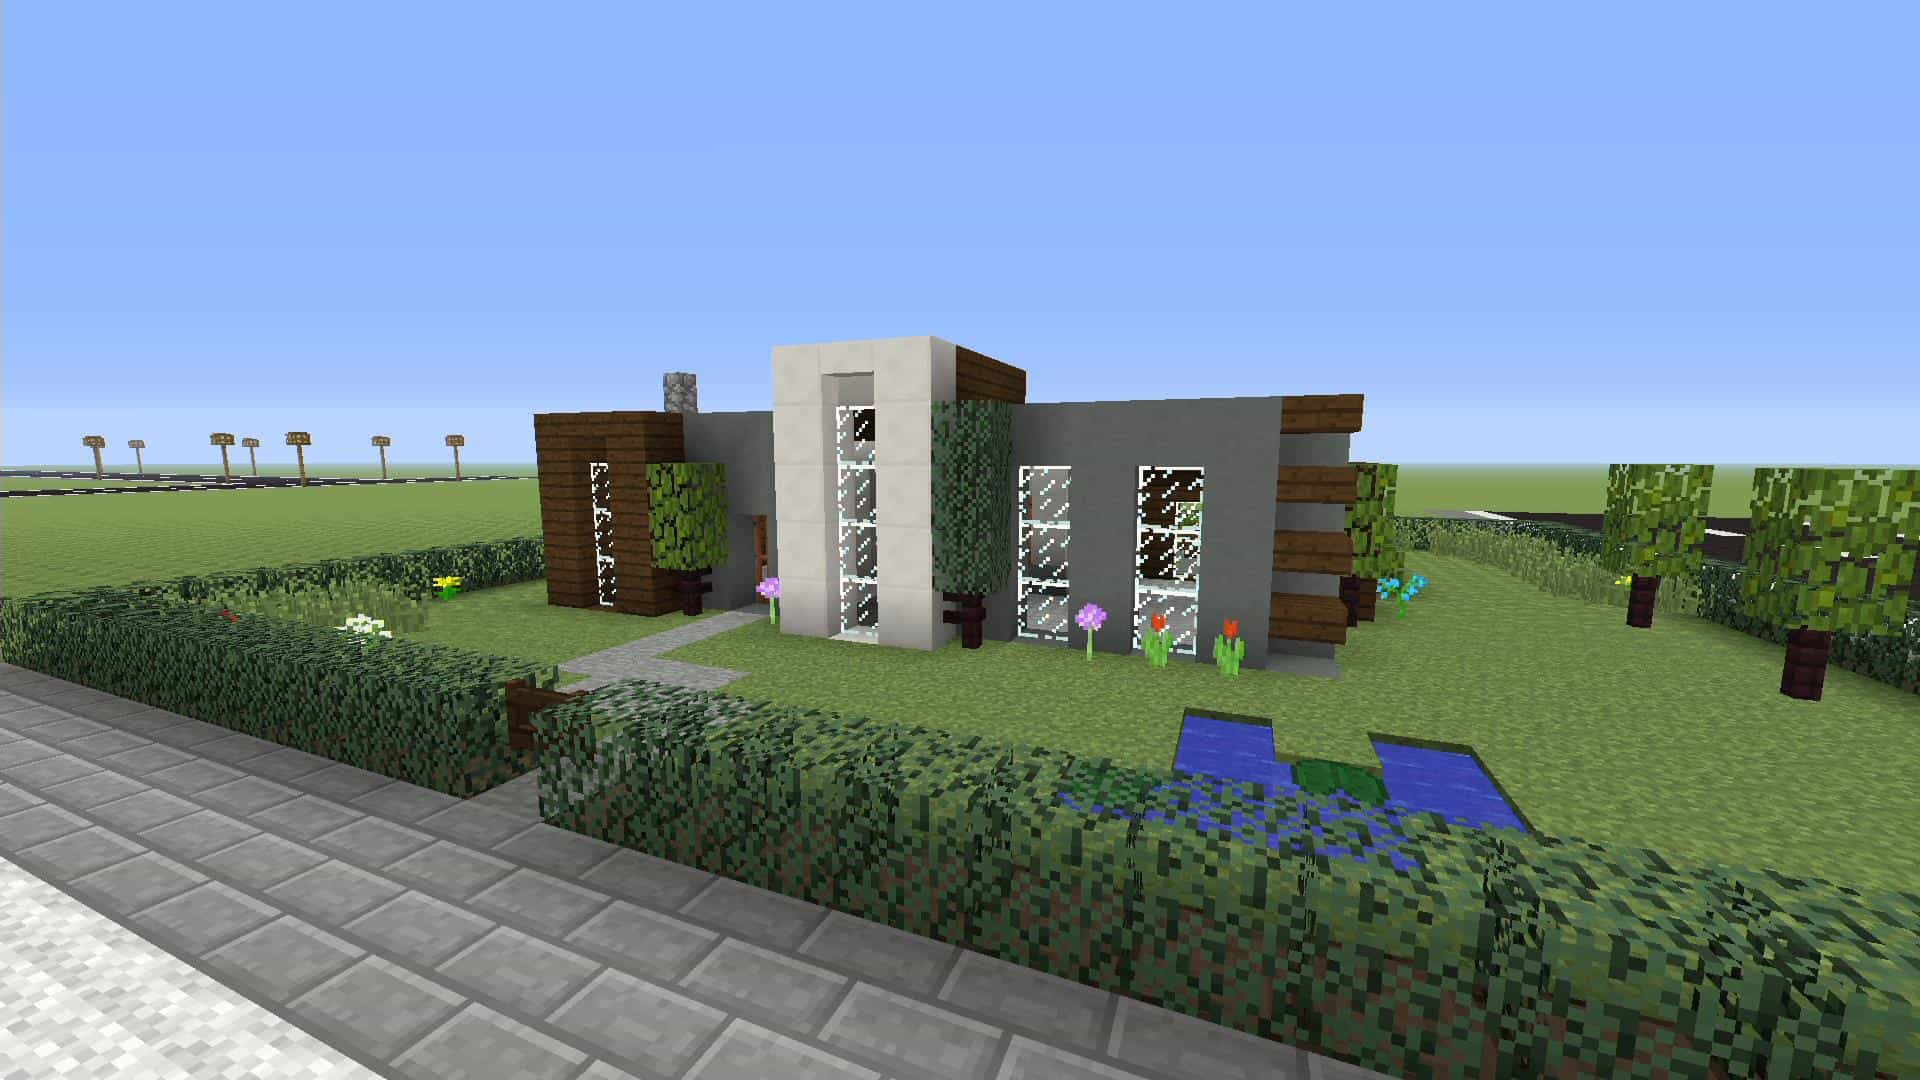 Simple modern house xbox one minecraft house design for Modern house xbox minecraft